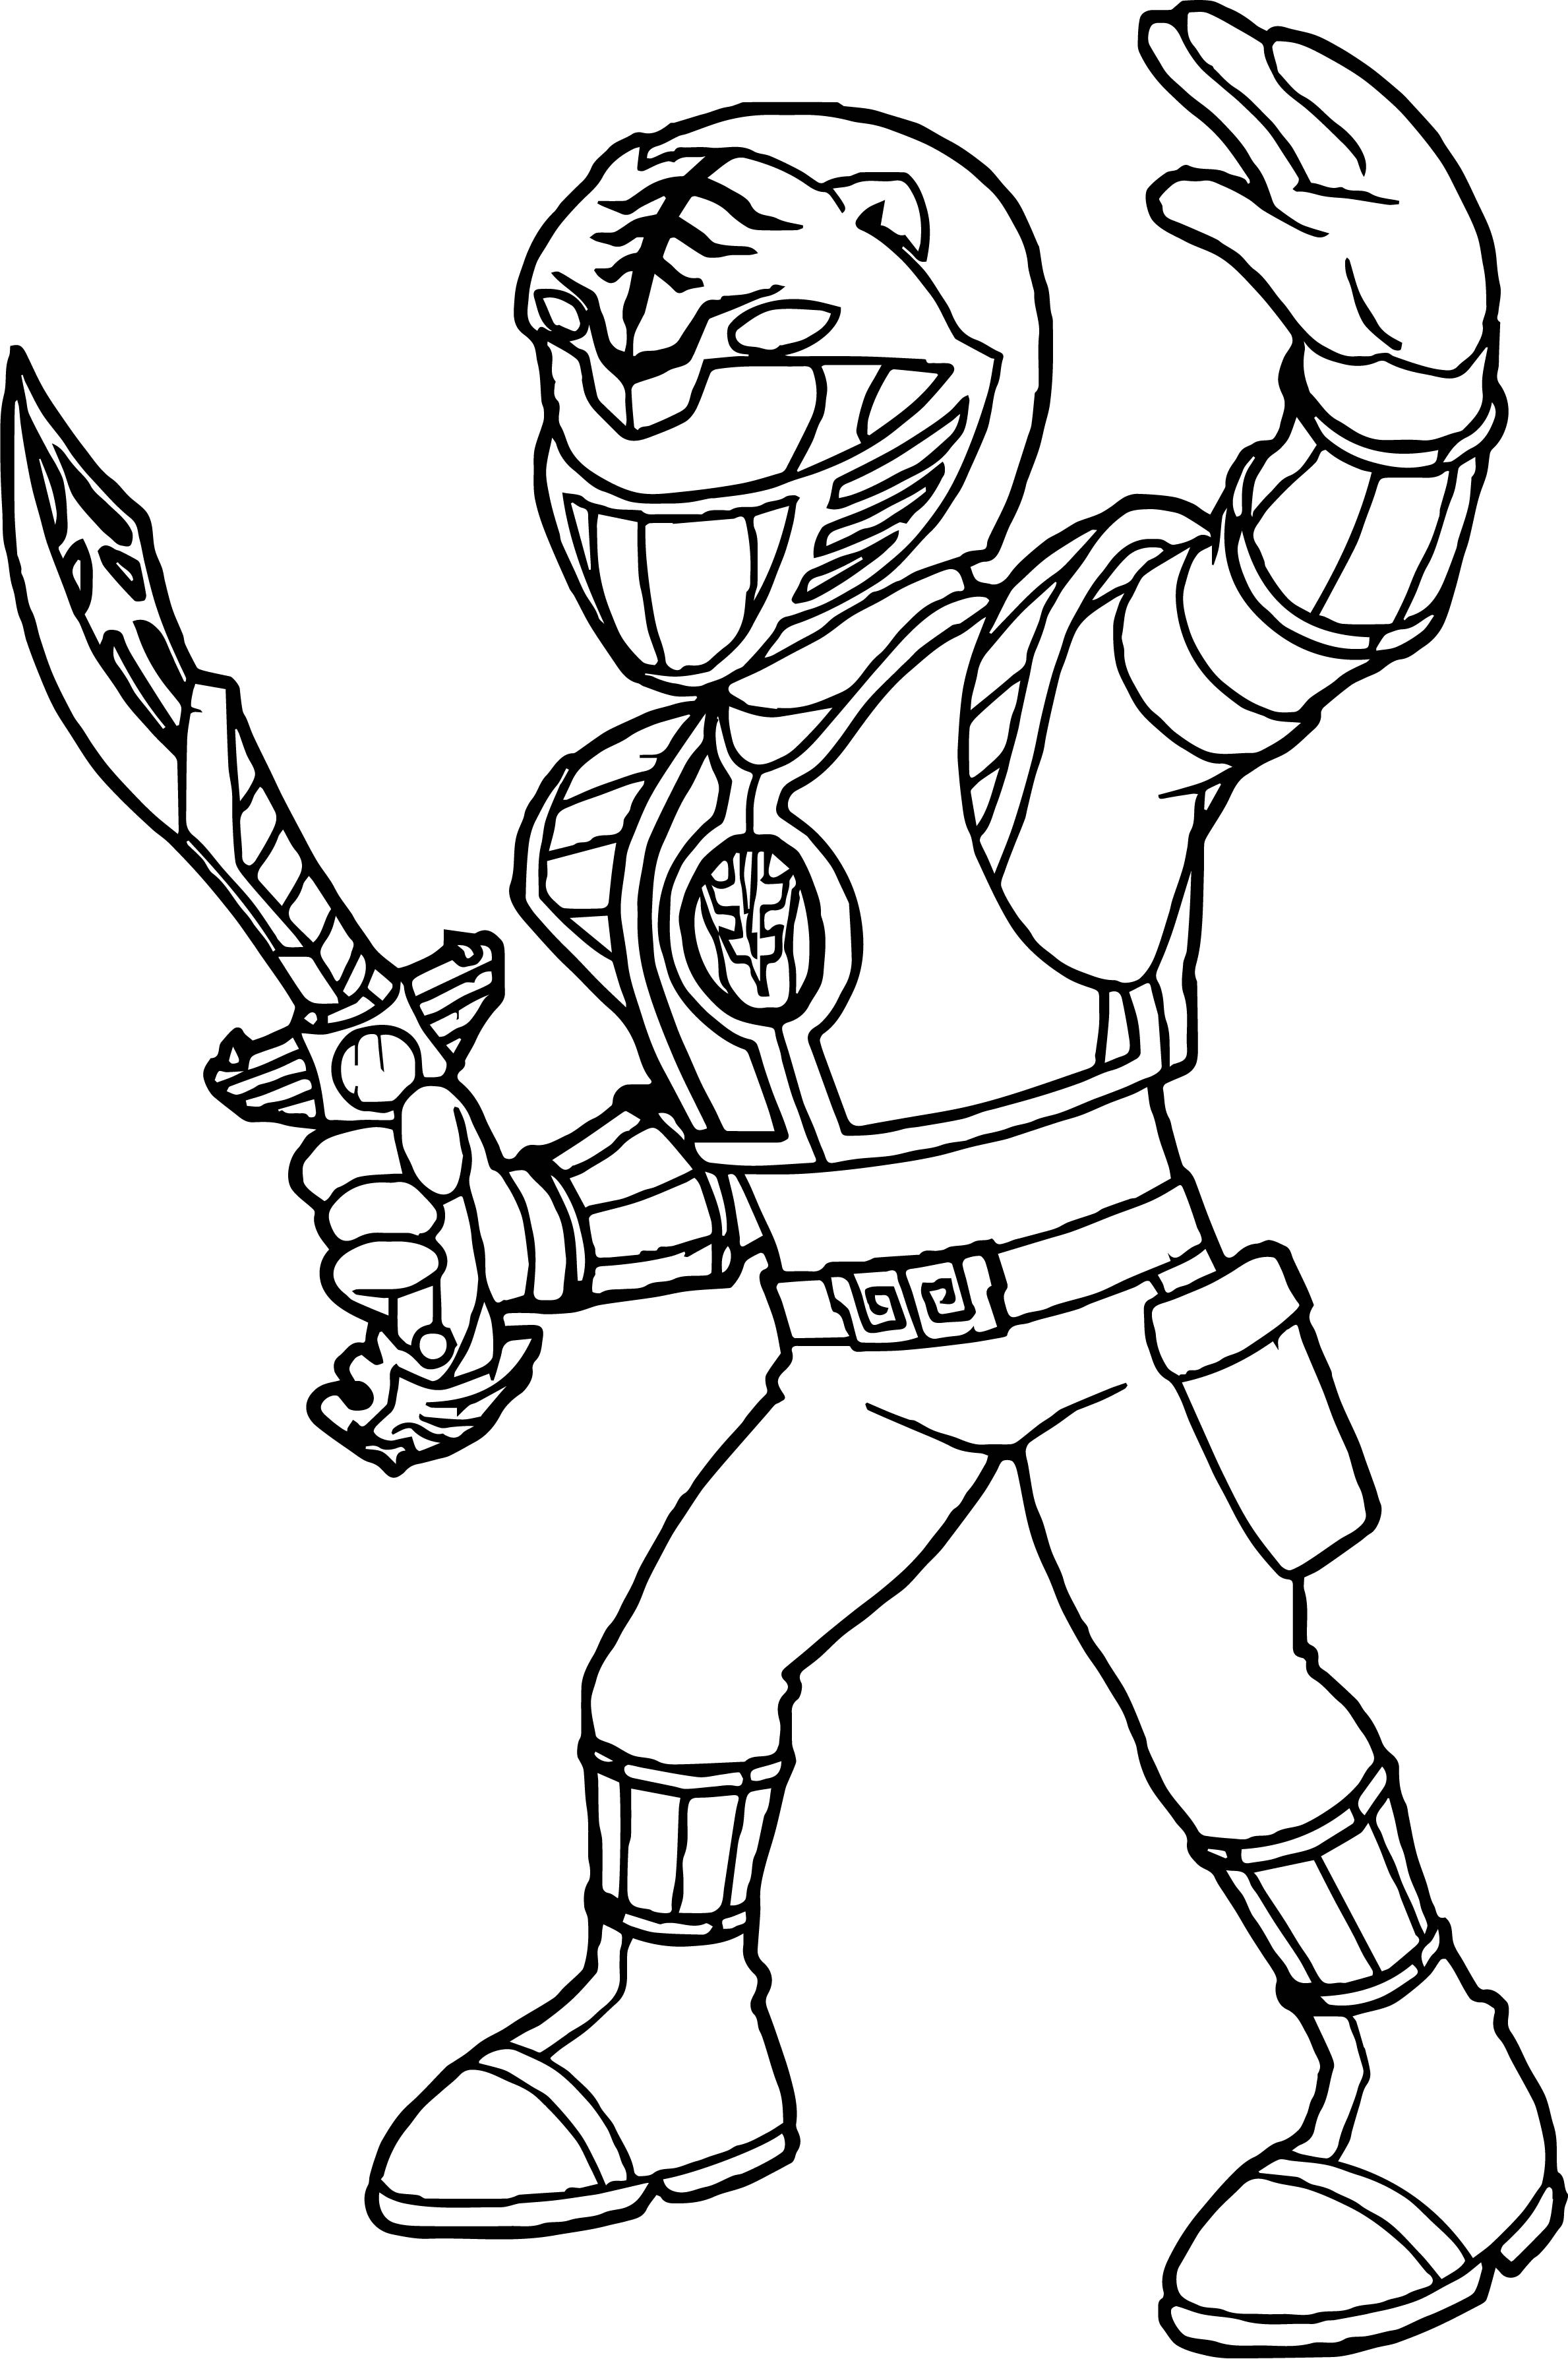 Power Ranger Coloring Pages  Power Rangers White Ranger Coloring Page